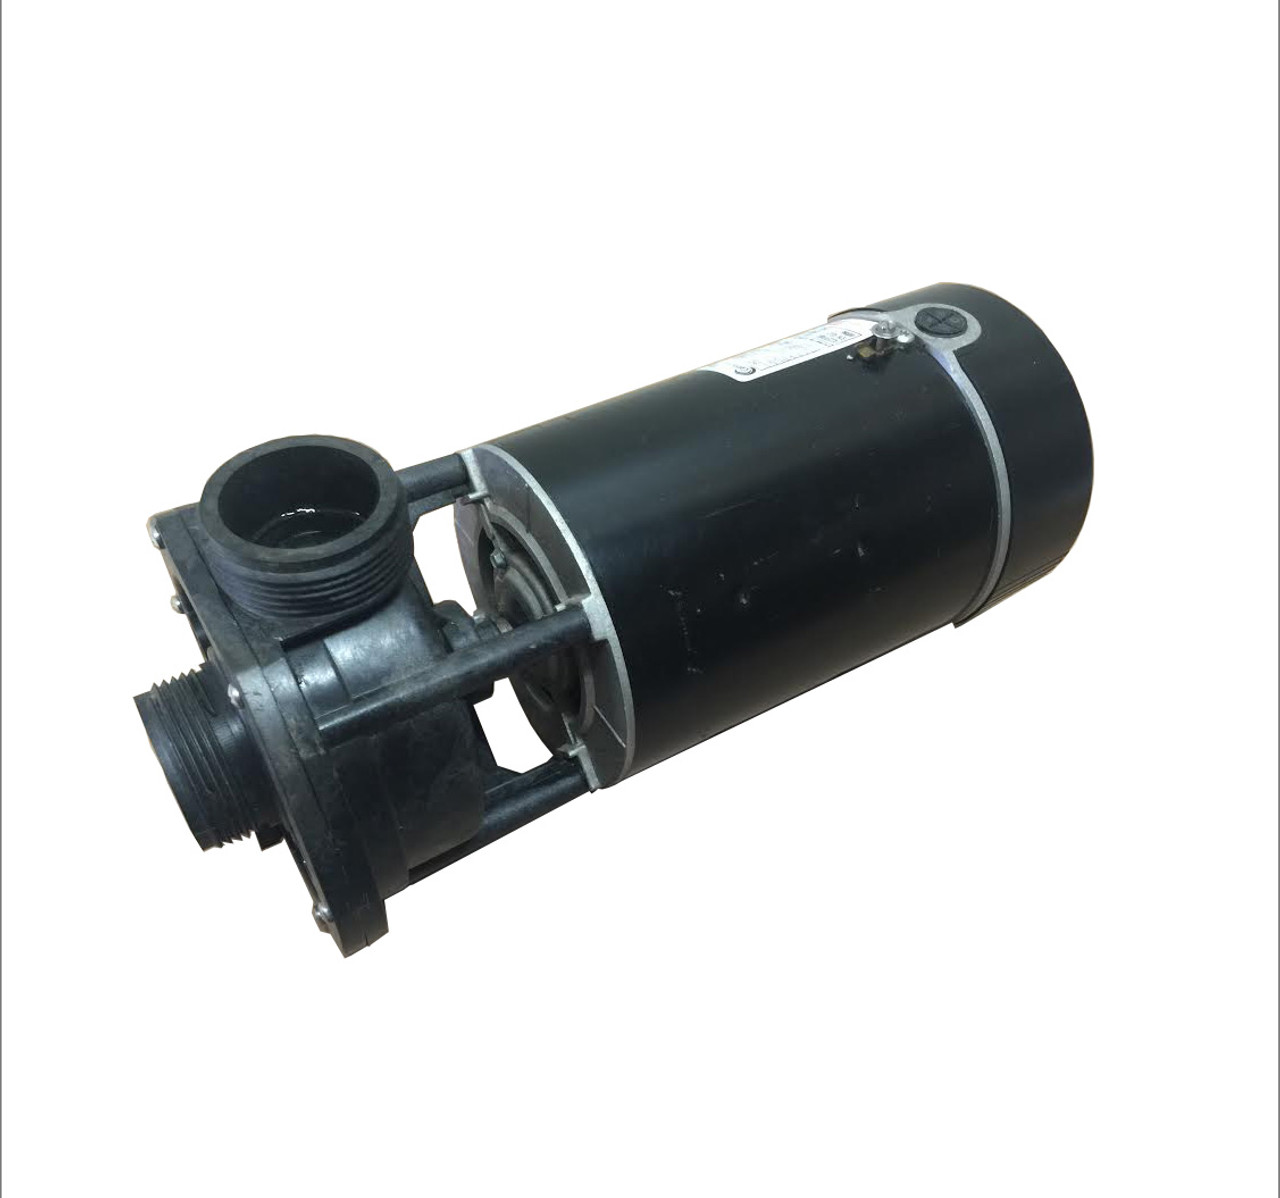 hight resolution of replacement for softub hot tub pump 115 volt 03510138 2 spa parts depot